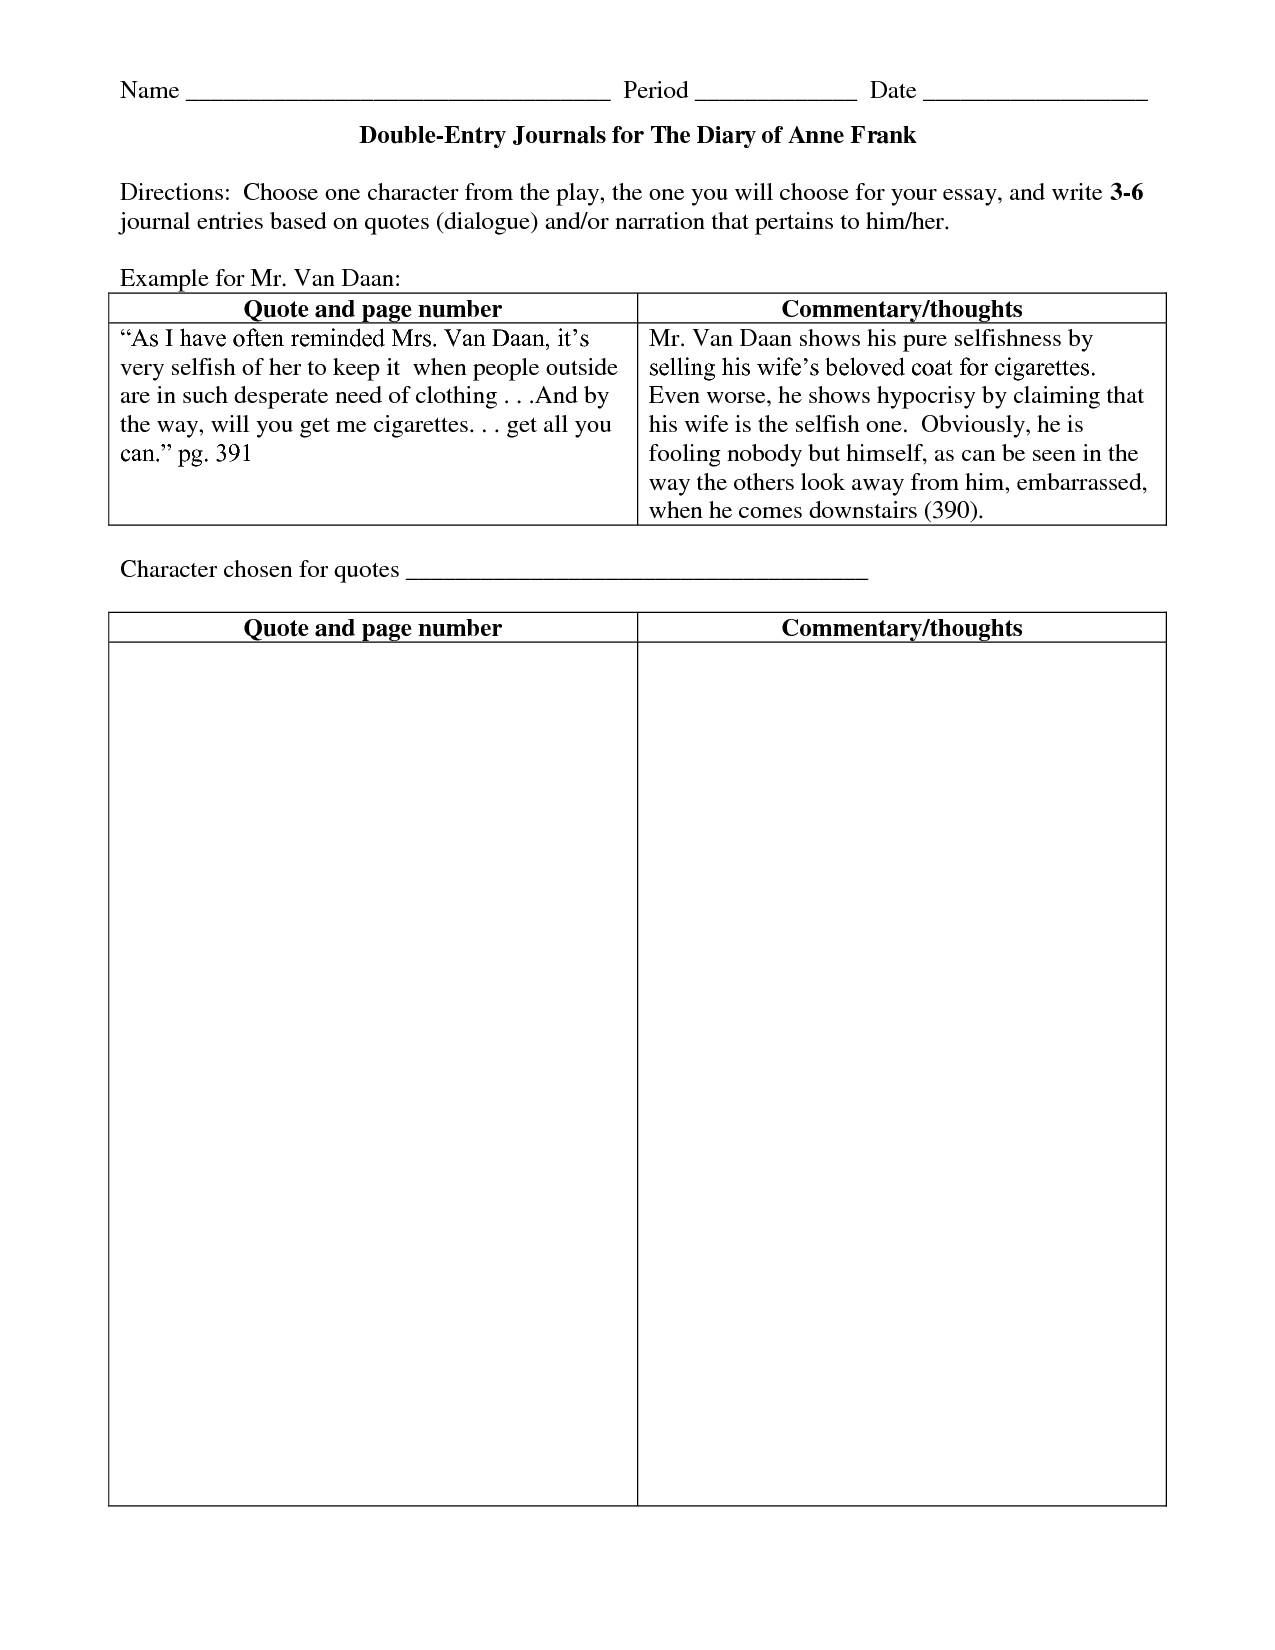 double entry journals examples | Teaching | Pinterest | Double entry ...